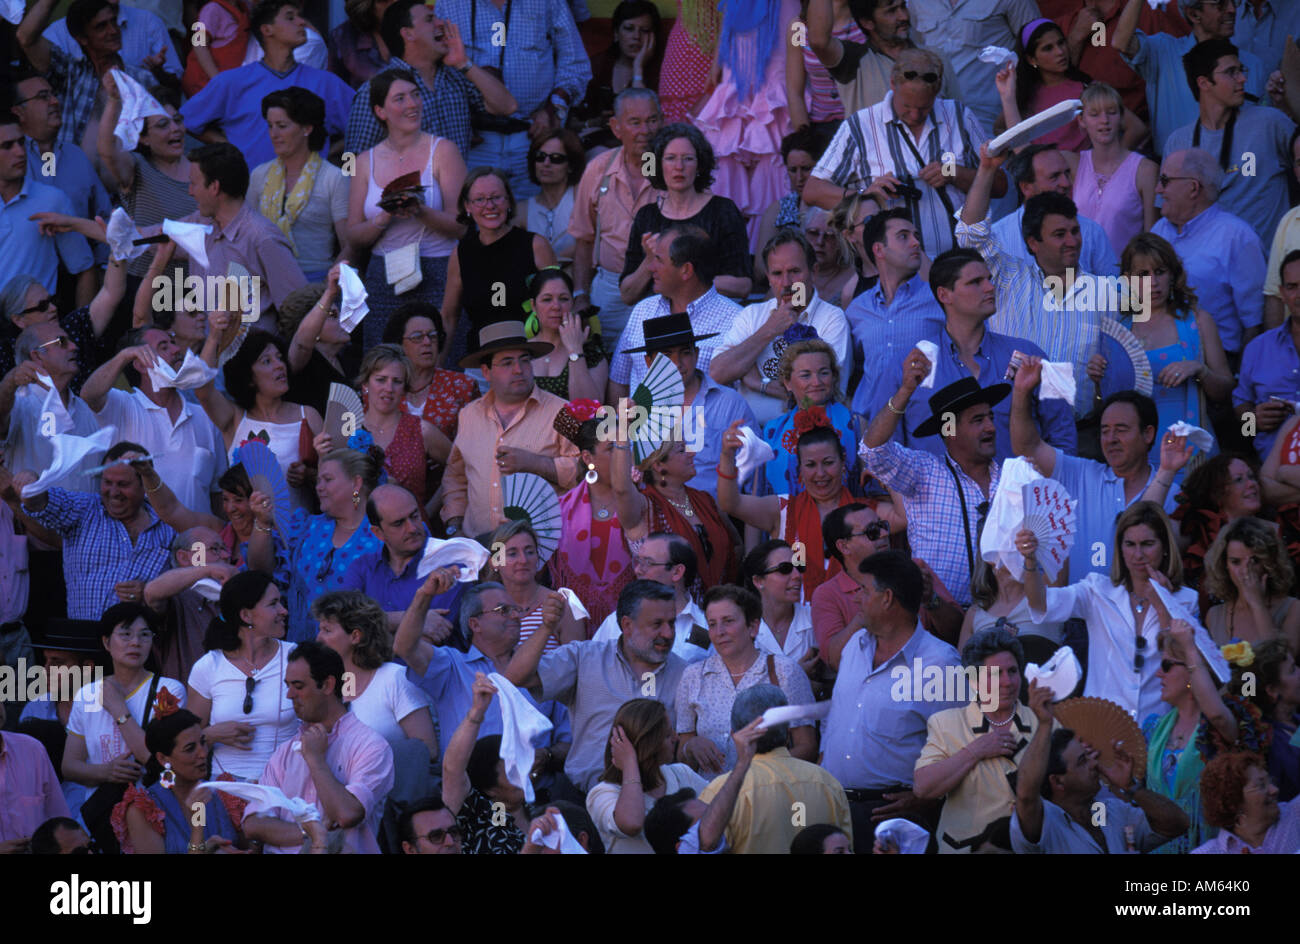 Audience in traditional clothing watching a bullfight - Stock Image